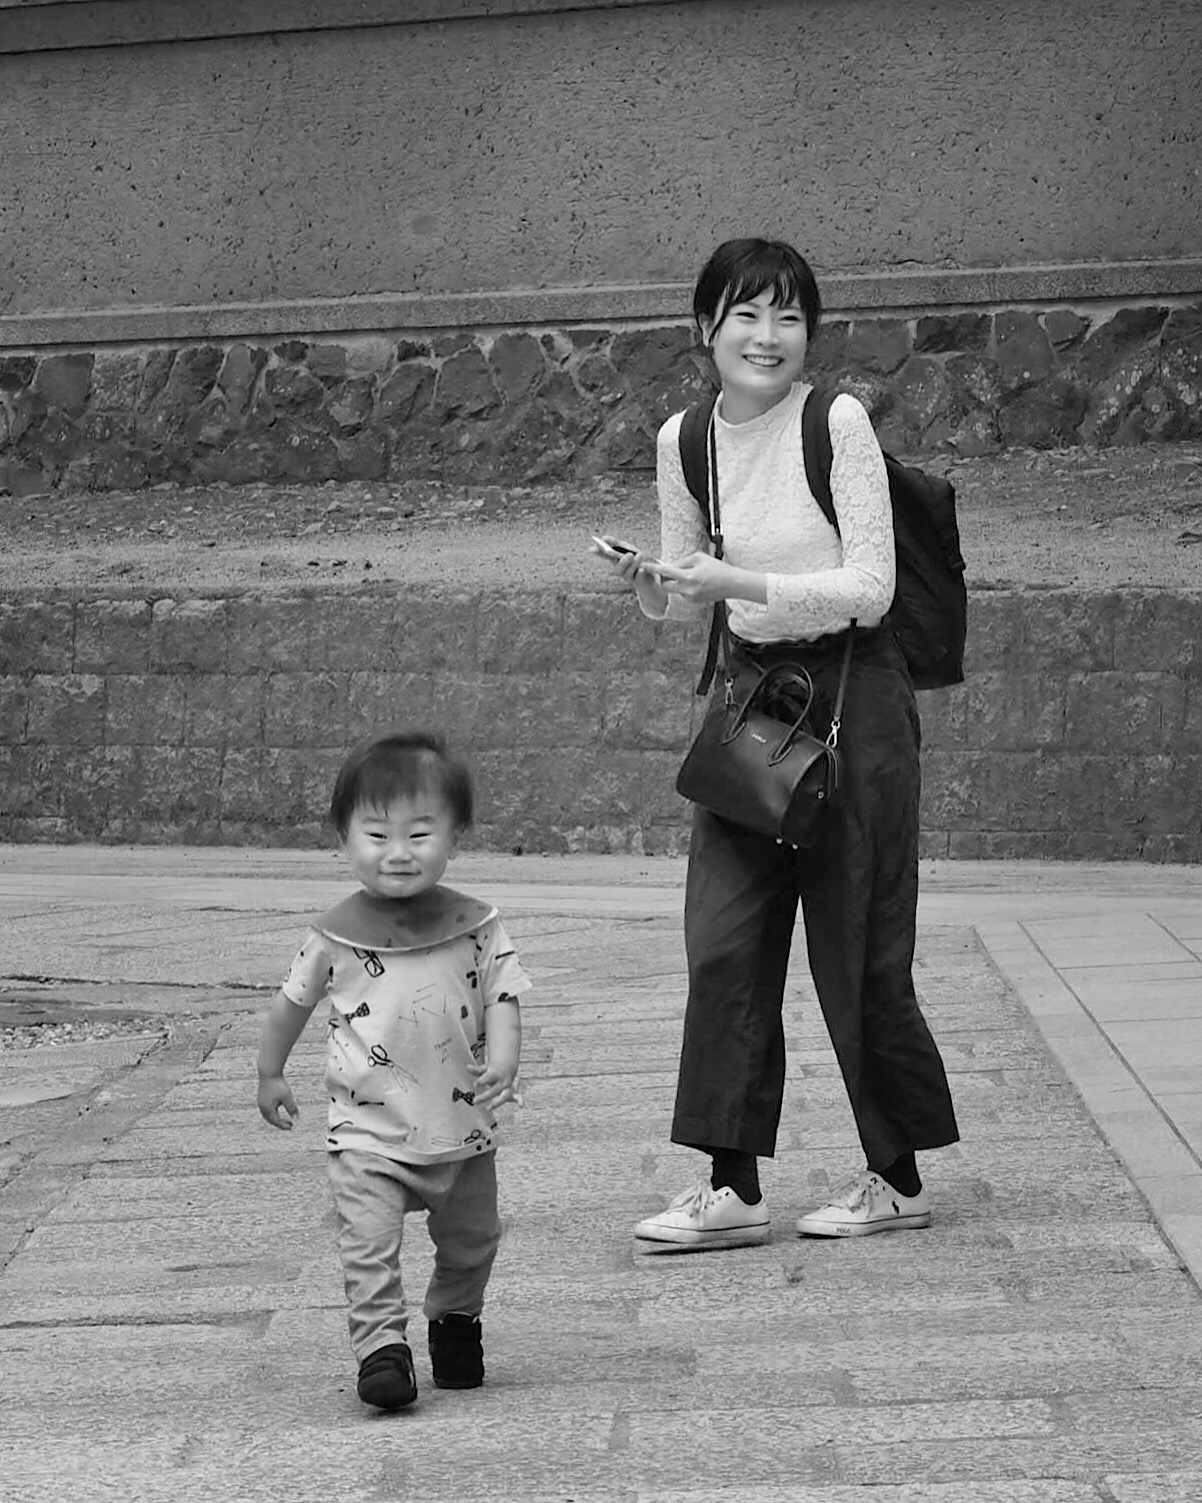 This child's face has soft focus. I do not think it was the shutter speed since that was 1/640 sec., which is usually sufficient, especially for someone walking toward you. The aperture was f/6.3. I think I focused on the woman's face and there was not enough depth of field for the child's face, because he was a good bit in front of her. I wish I had focused on the child, then most likely the woman would be in focus. You will get significantly more depth of field behind the focus point than in front of the focus point. In the big scheme of things, it does not matter. This picture is one that I like and it has been well received by viewers.